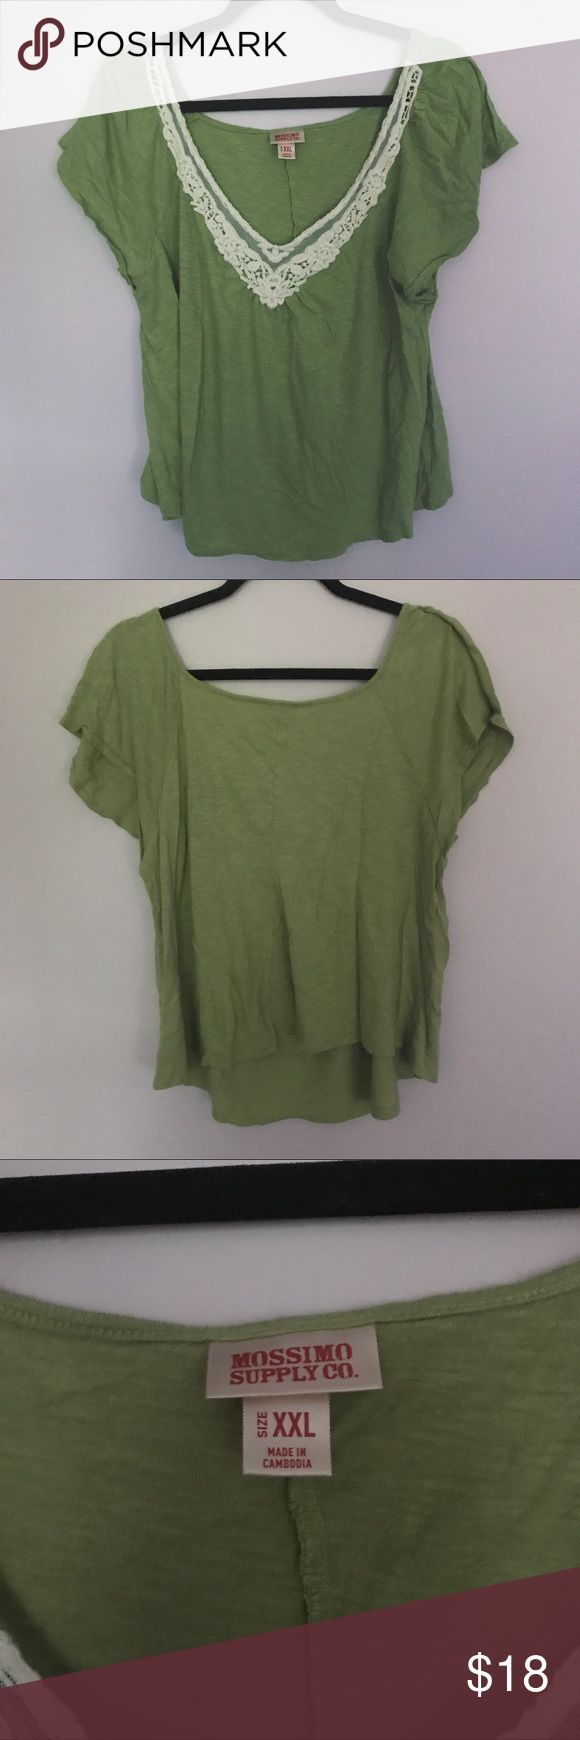 Olive Green Short Sleeve Top Excellent used condition. No flaws, rips, or stains. Lace and cotton neckline detail. Comes from a smoke free and pet friendly home. Mossimo Supply Co. Tops Tees - Short Sleeve